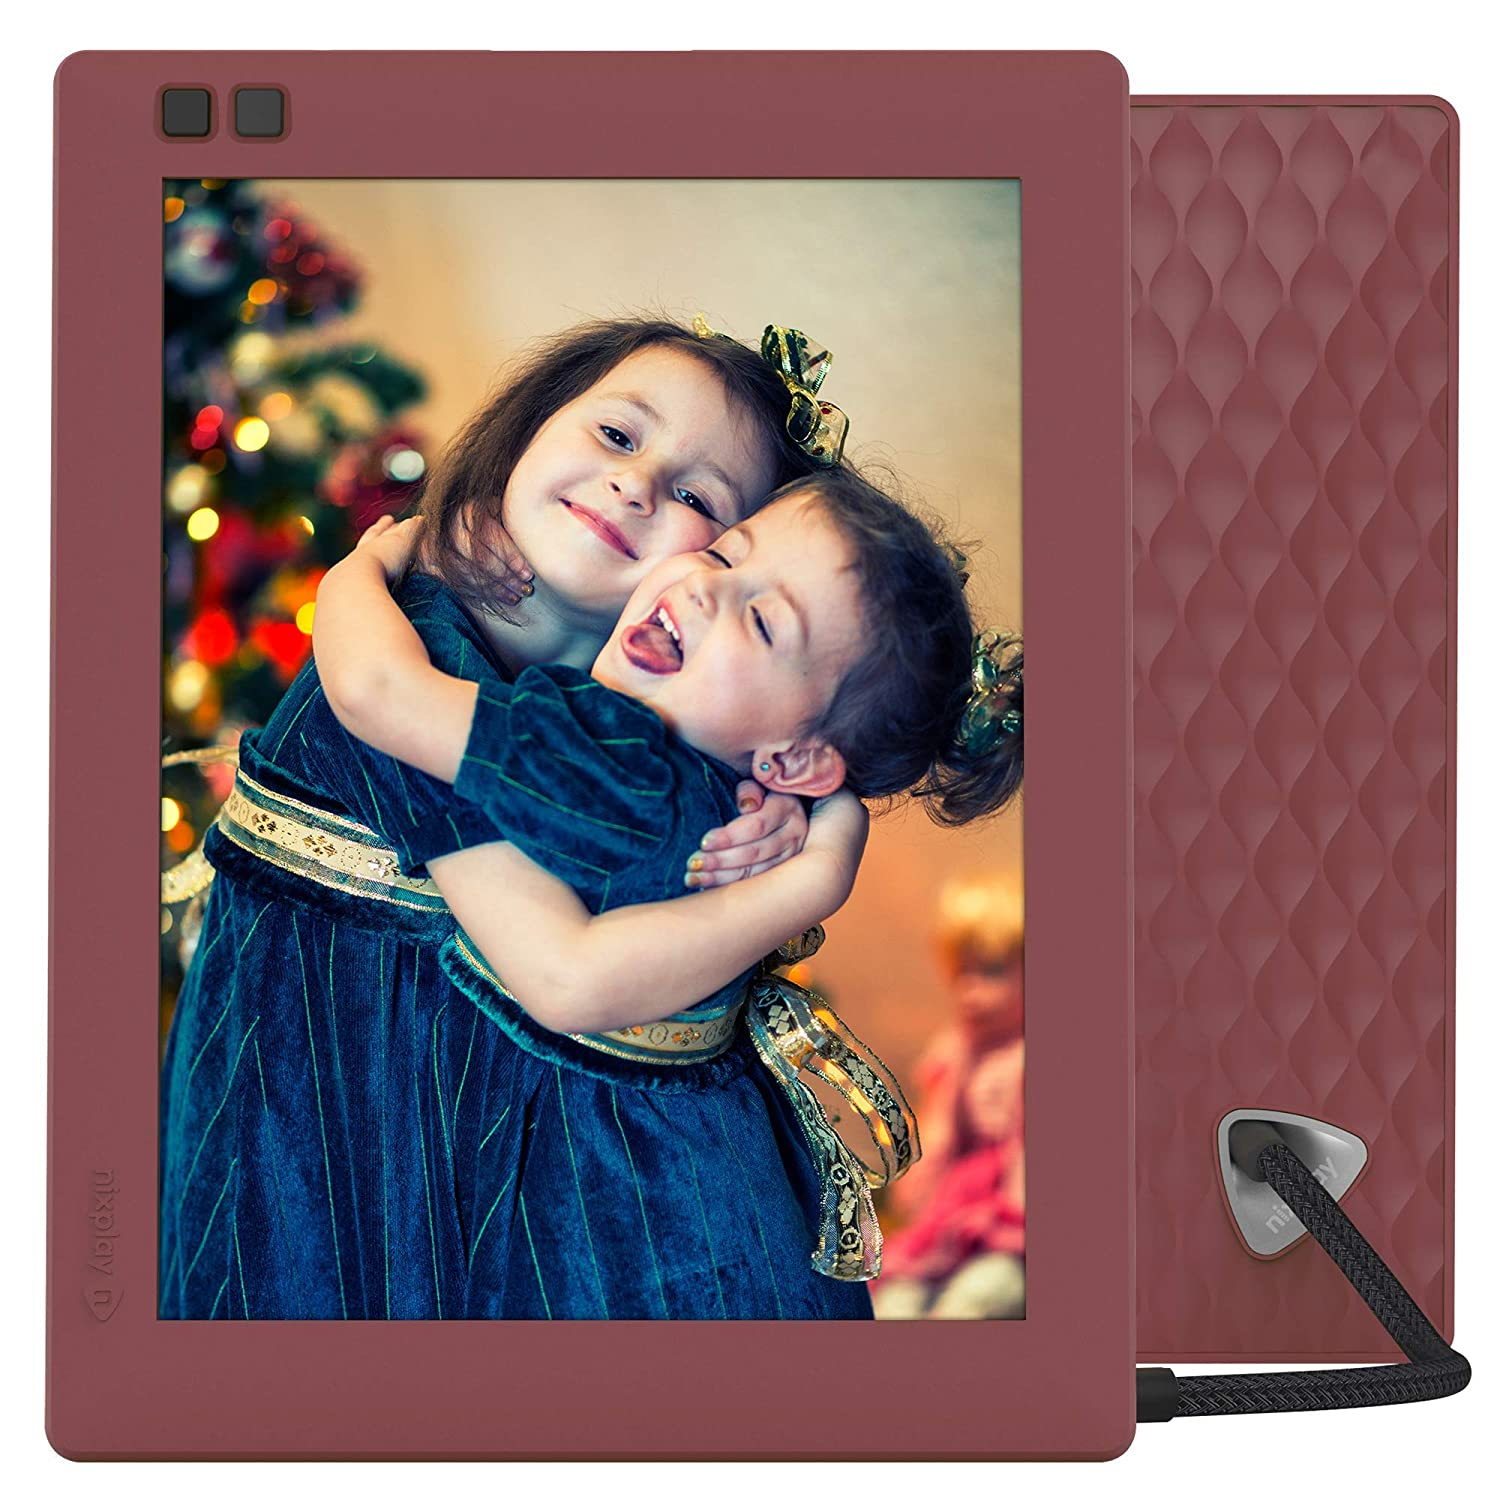 Nixplay Seed 8 inch WiFi Digital Photo Frame - Blue W08D - Blue